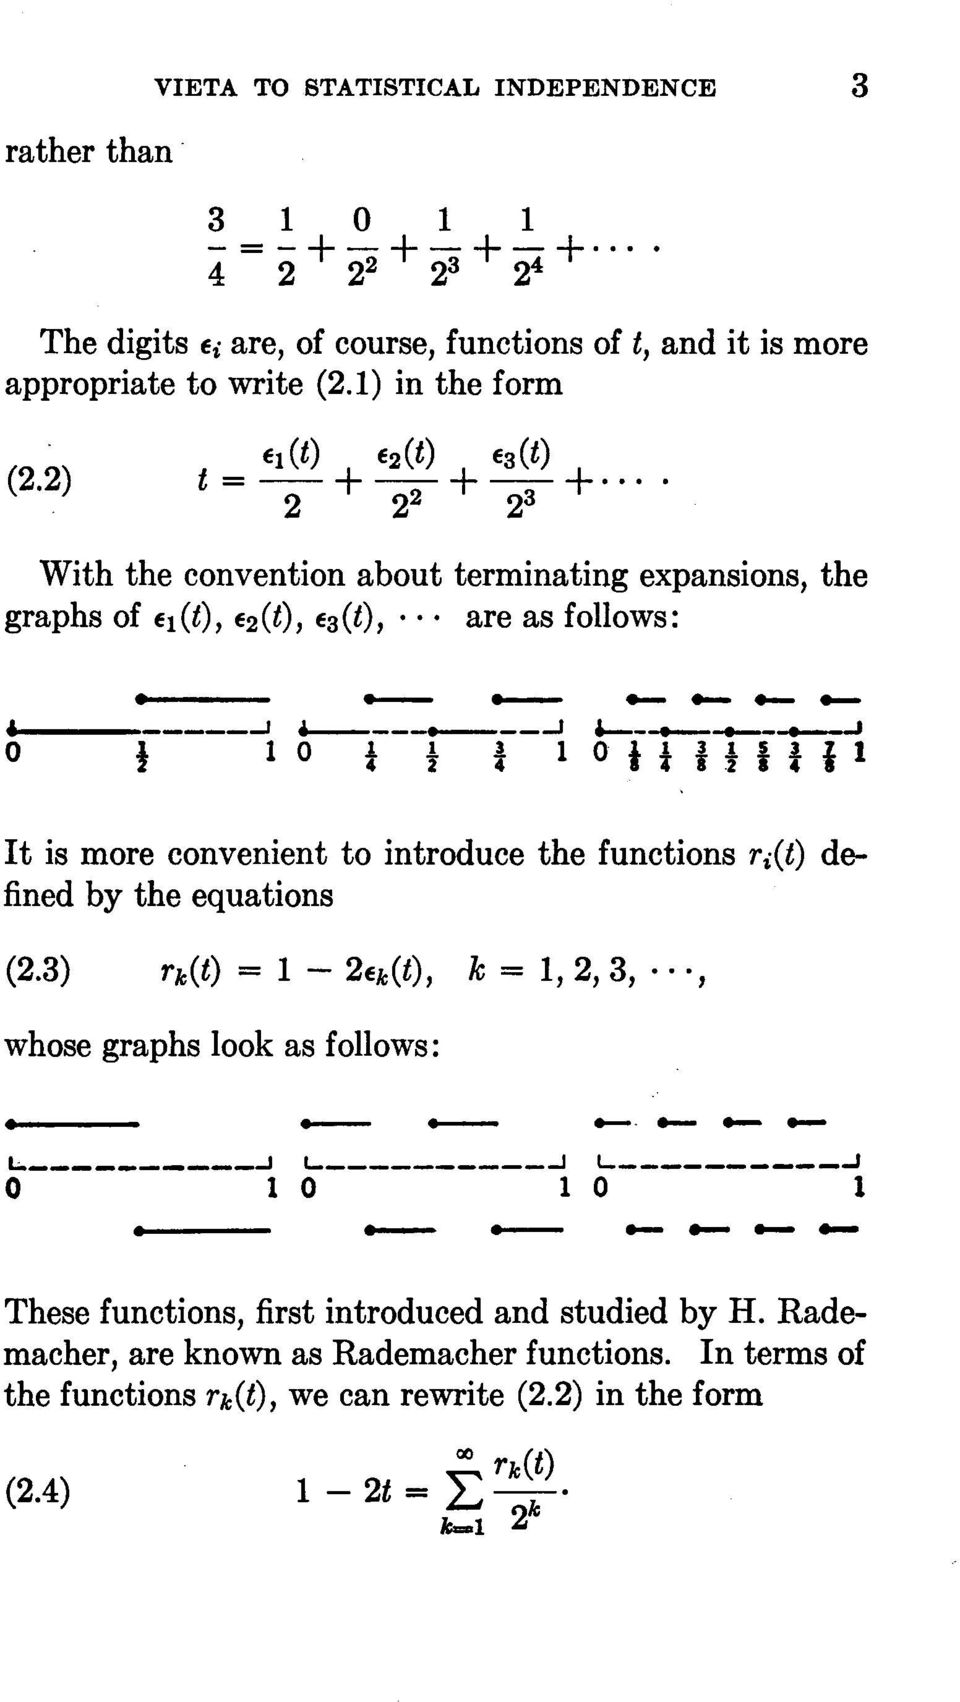 "111 1 It is more convenient to introduce the functions Ti(t) defined by the equations (2.3) rk(t) = 1-2Ek(t), k = 1, 2, 3,.. "" whose graphs look as follows: - - _."